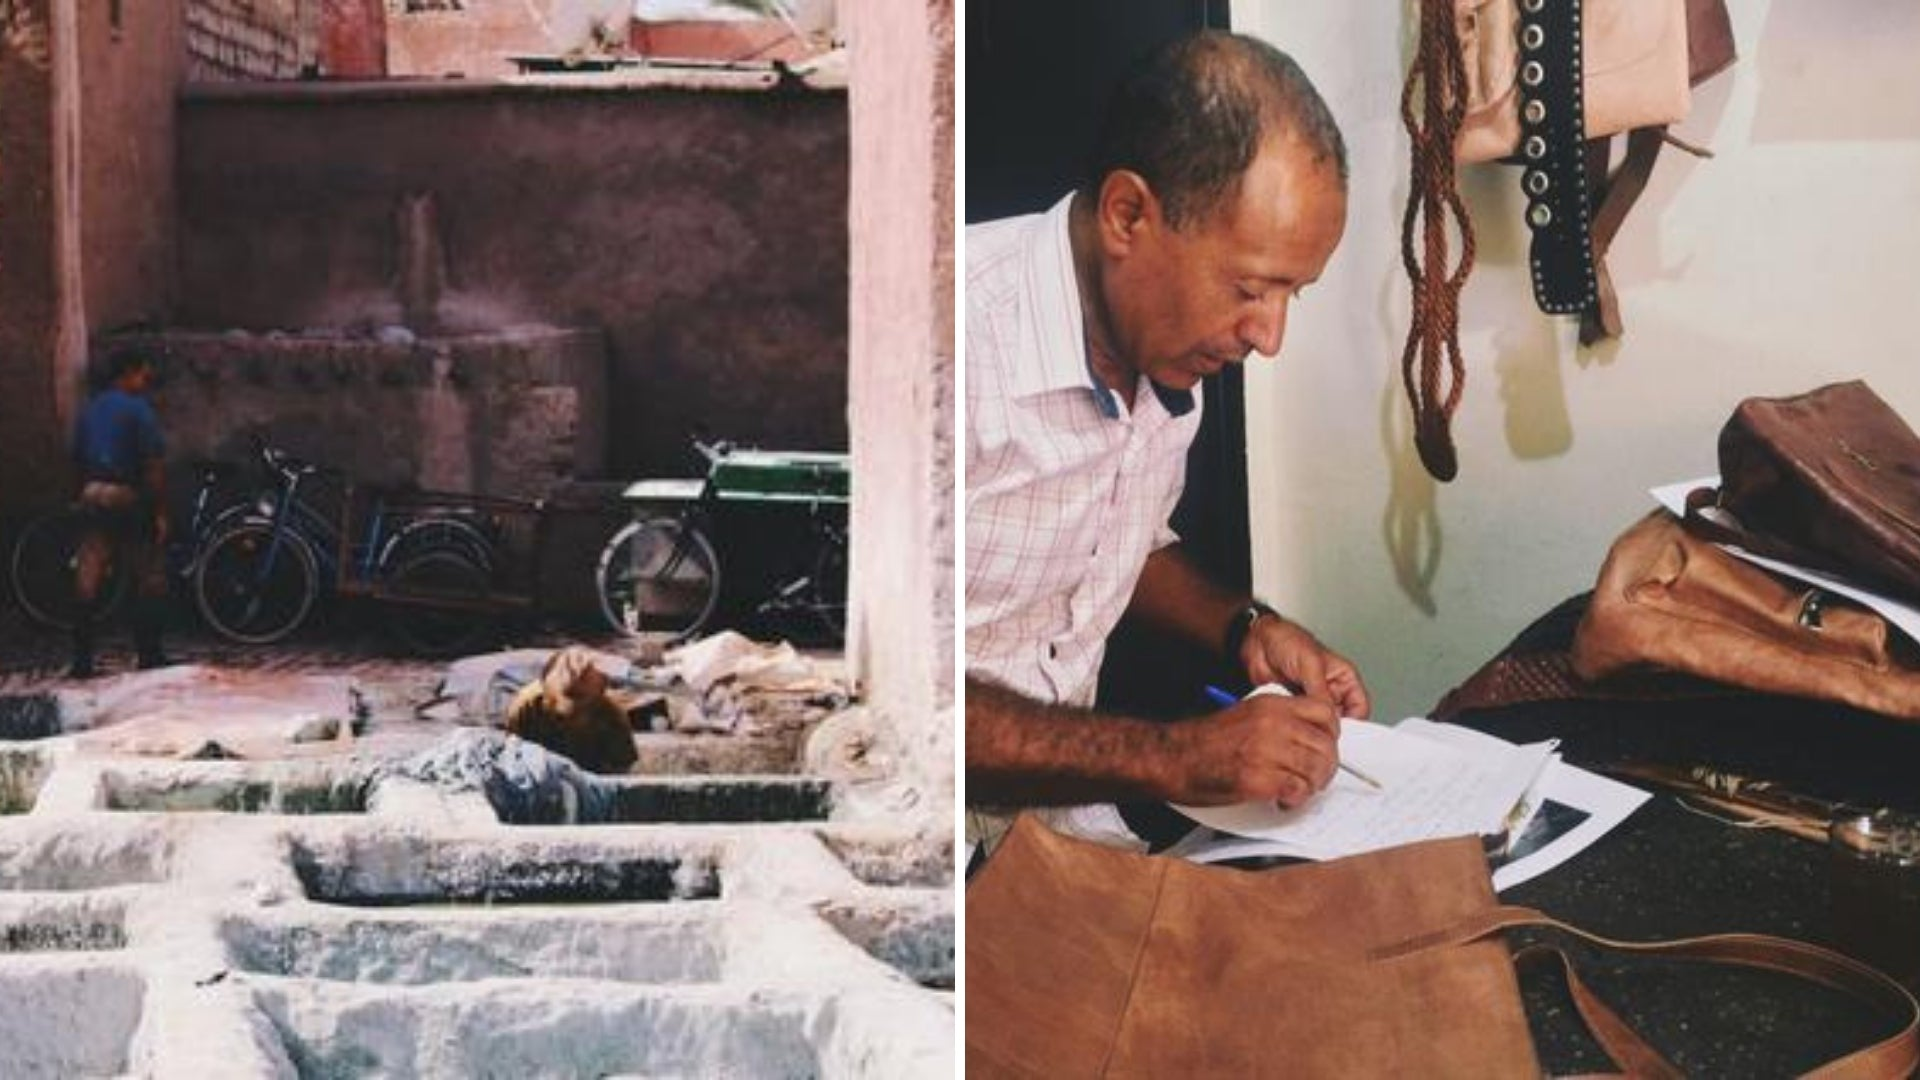 Moroccan leather artisans working in Marrakech